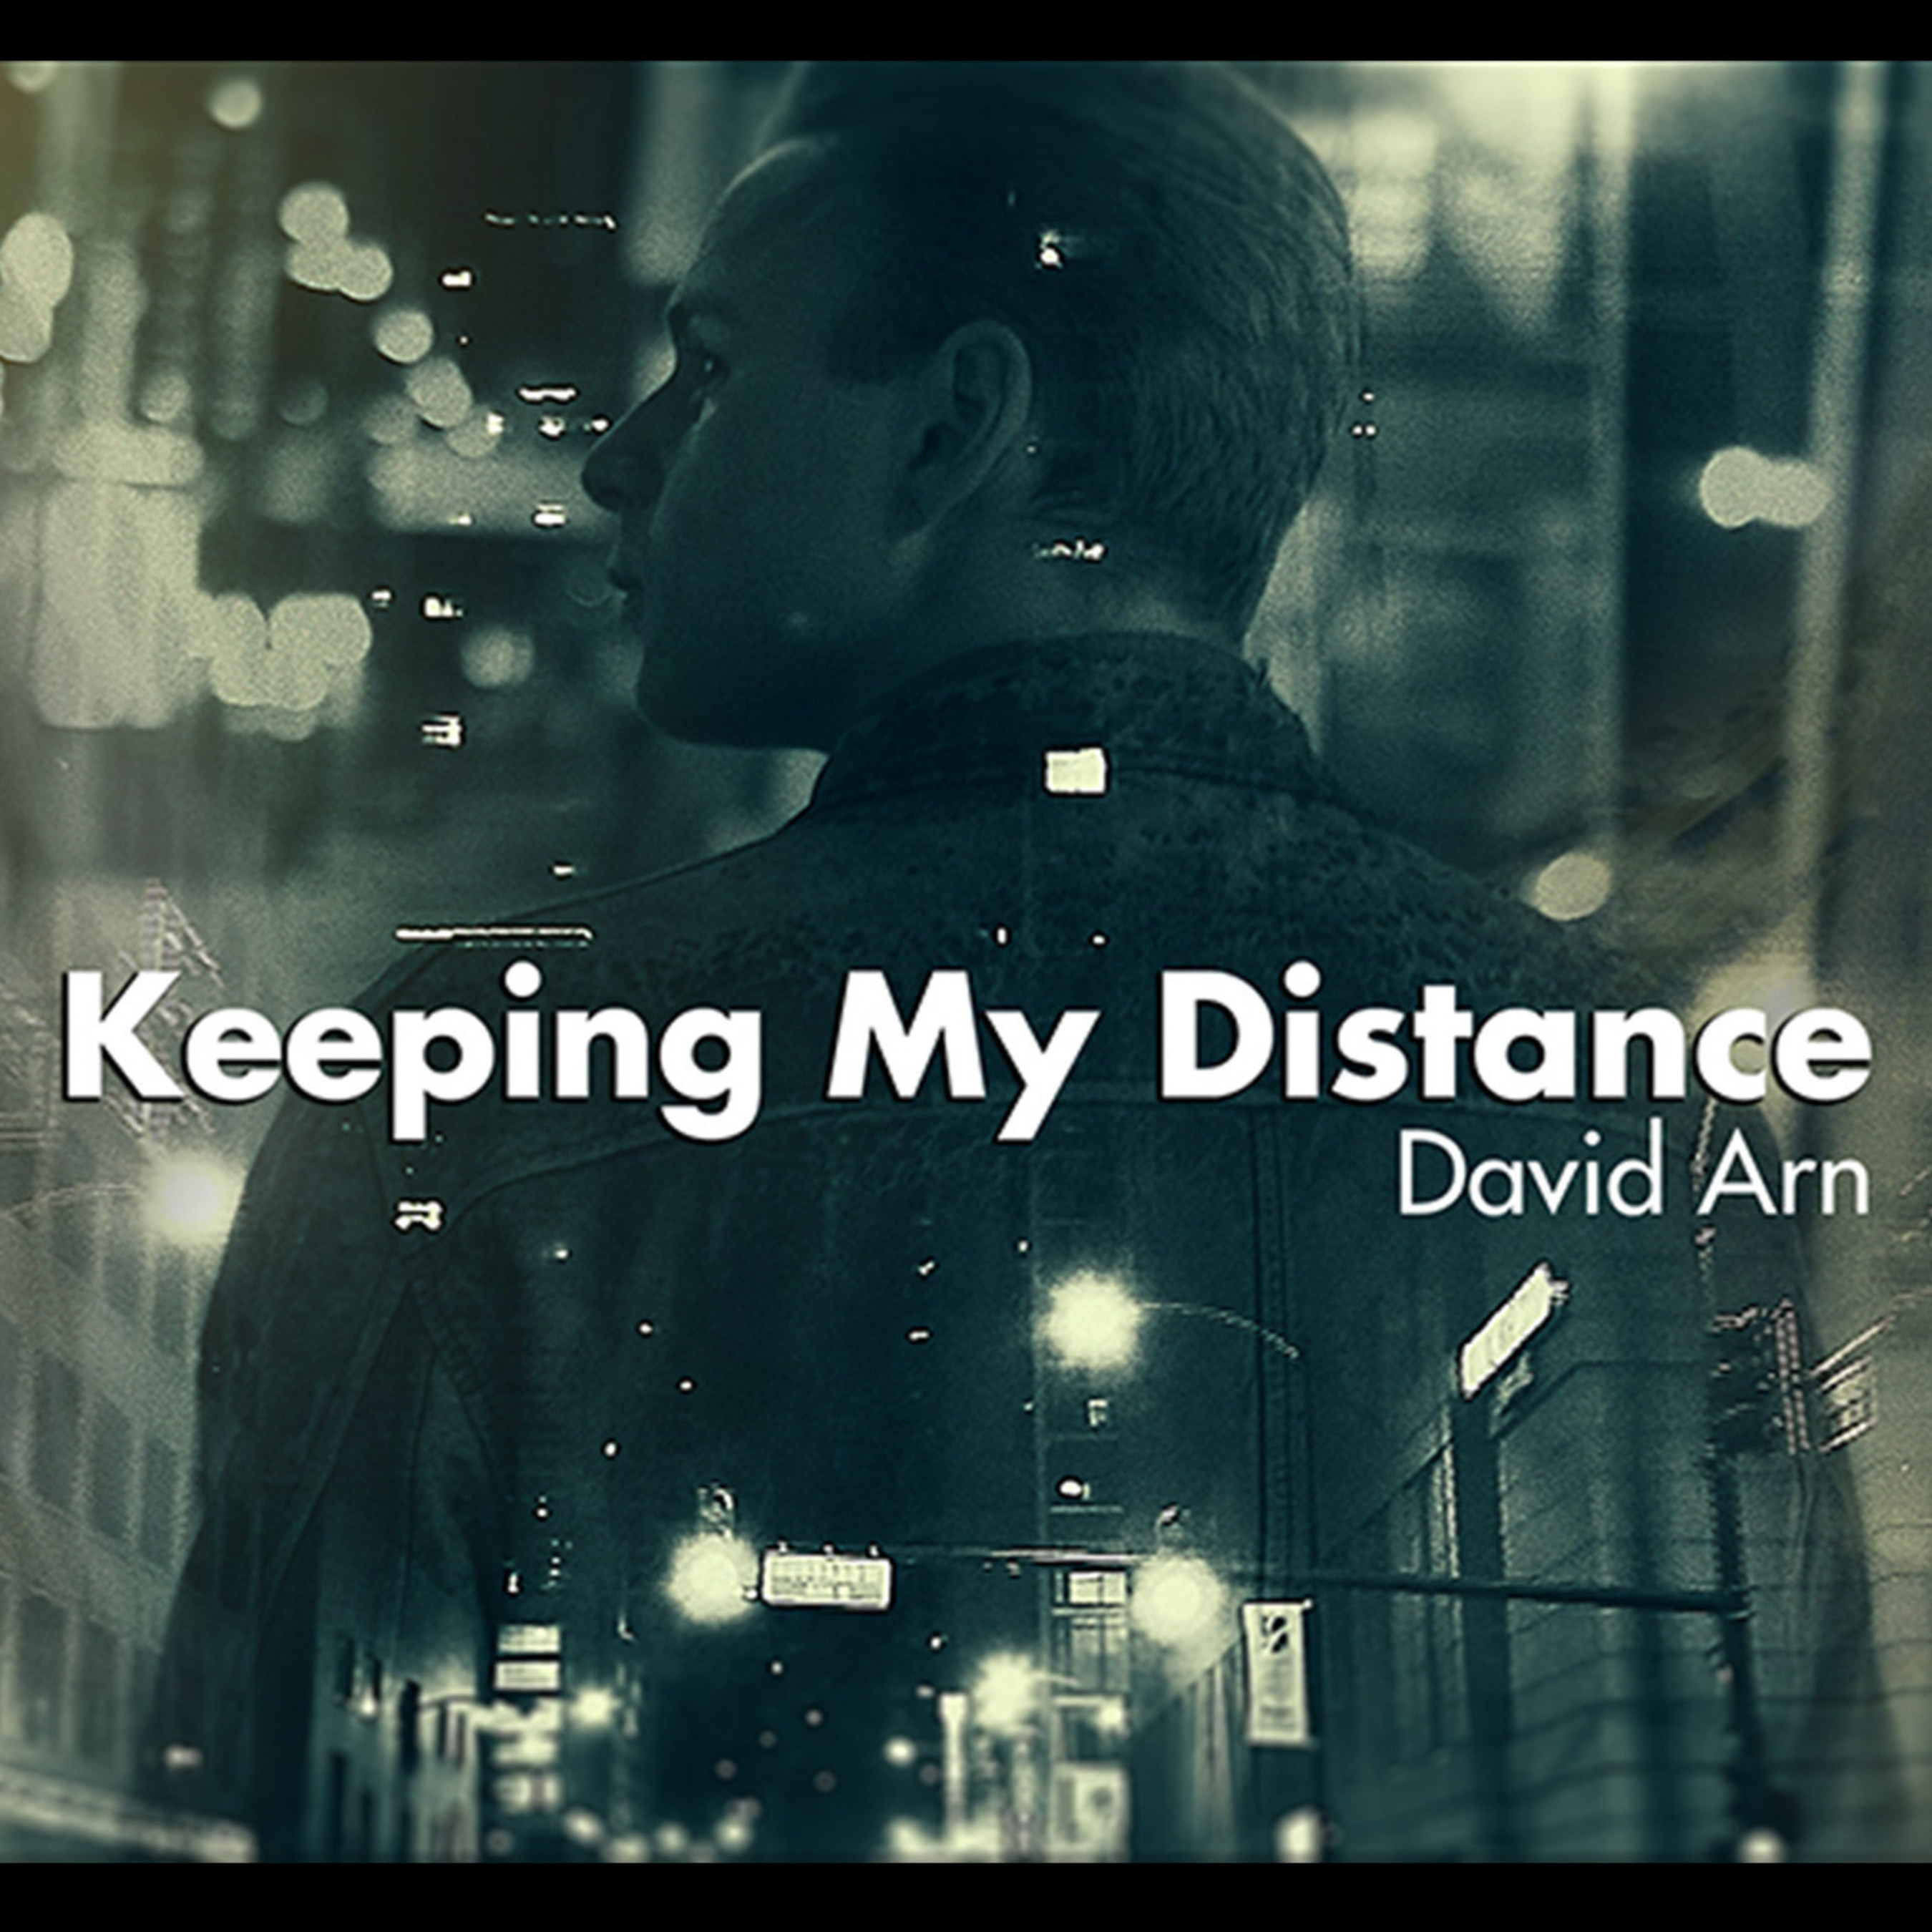 David Arn's 'Keeping My Distance' Comes Closer to Music Fans With New Video by Montreal's Playmaker Studios